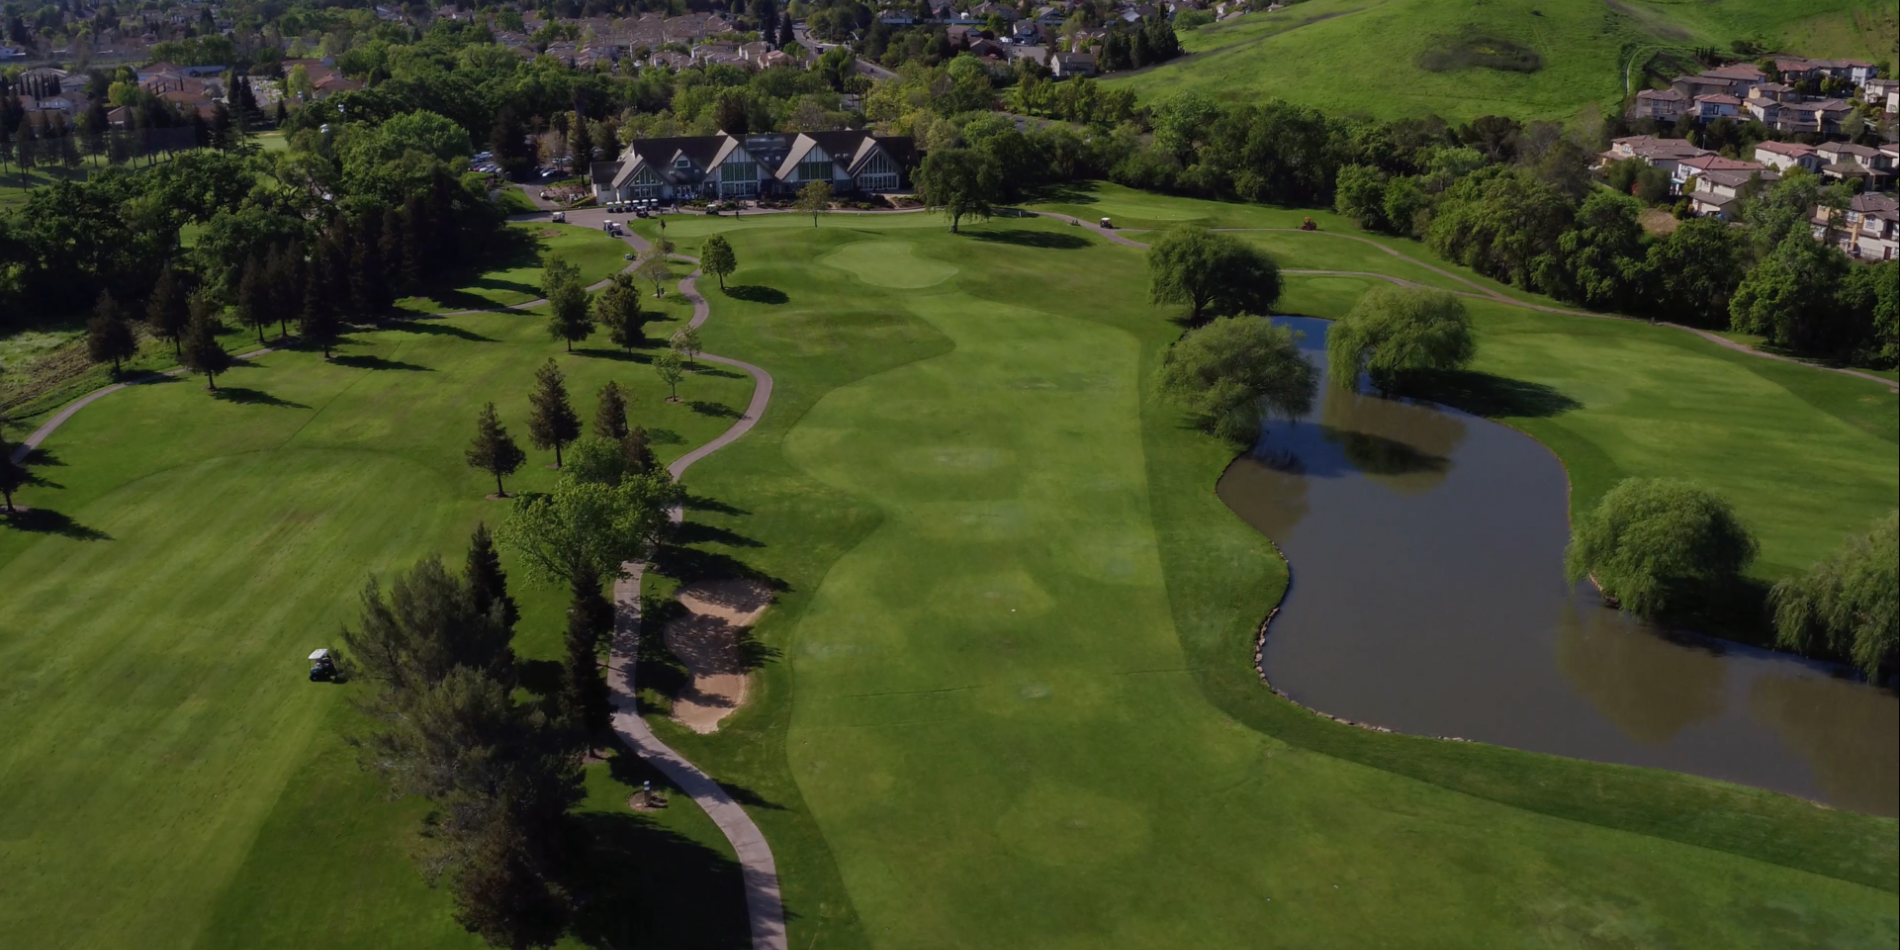 Two distinctive golf courses, one unforgettable experience